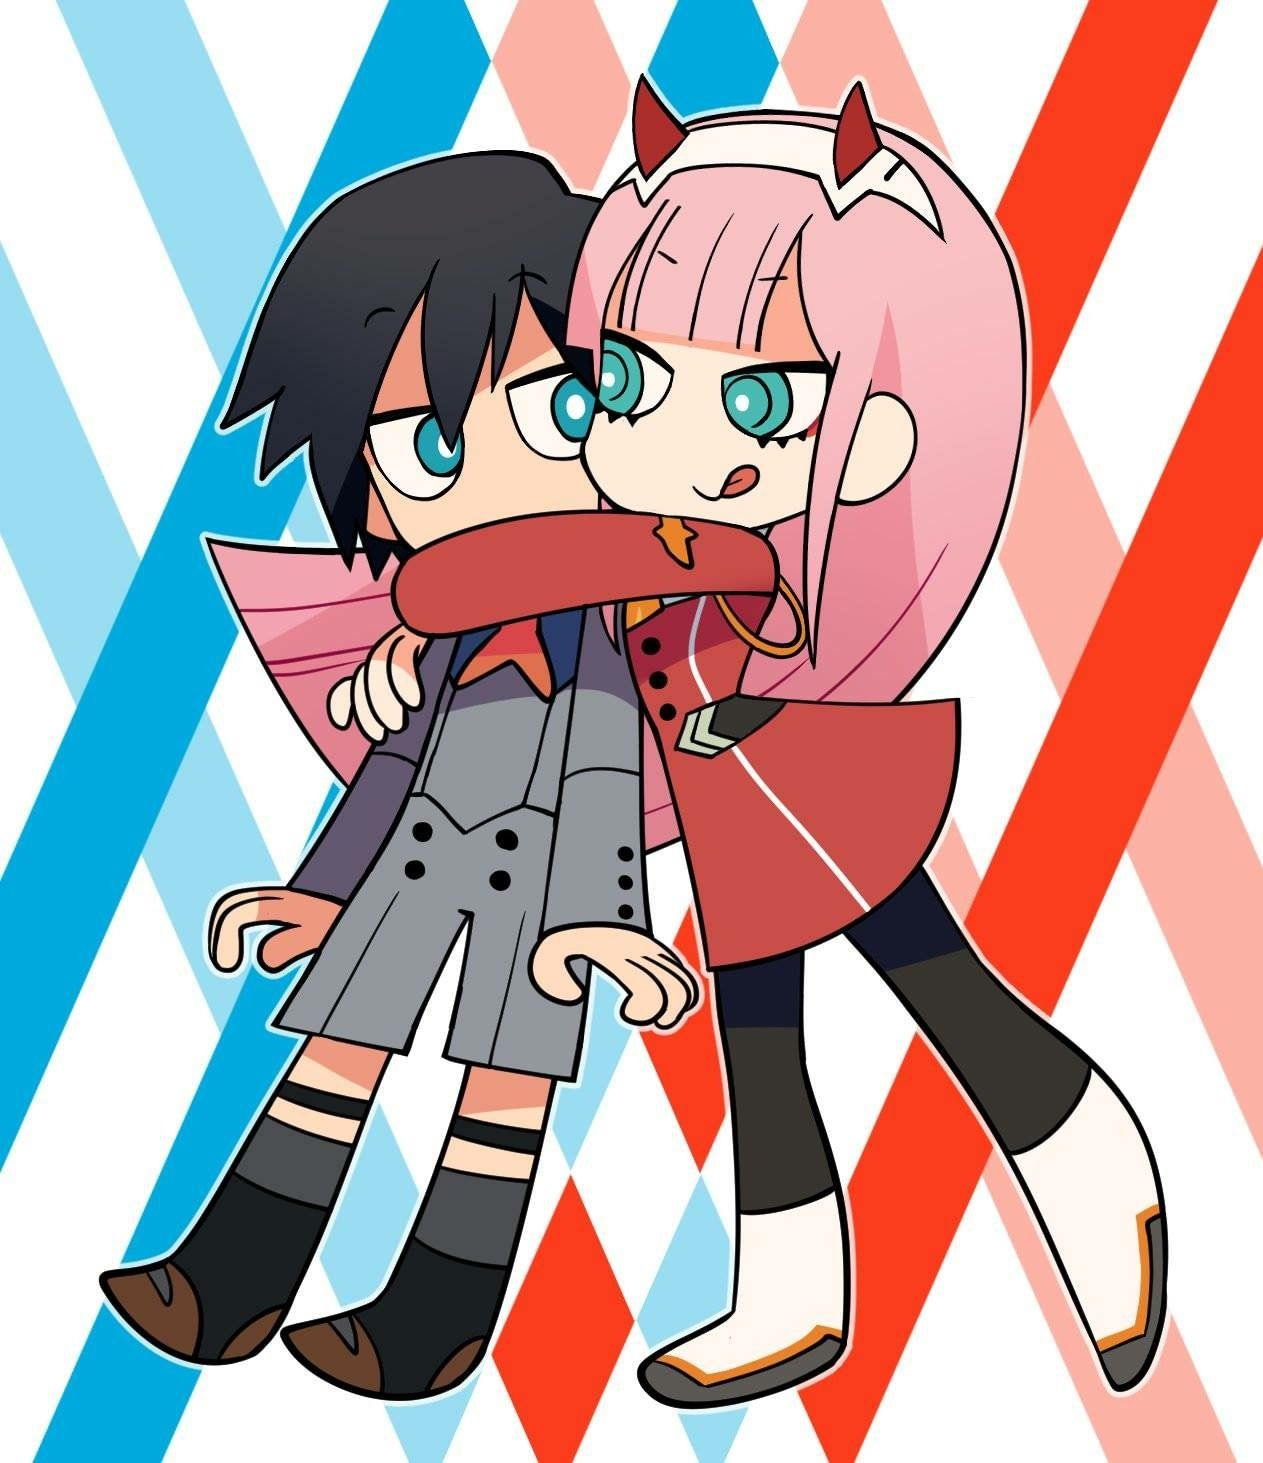 You I Like You Will You Be My Darling Darling In The Franxx Anime Chibi